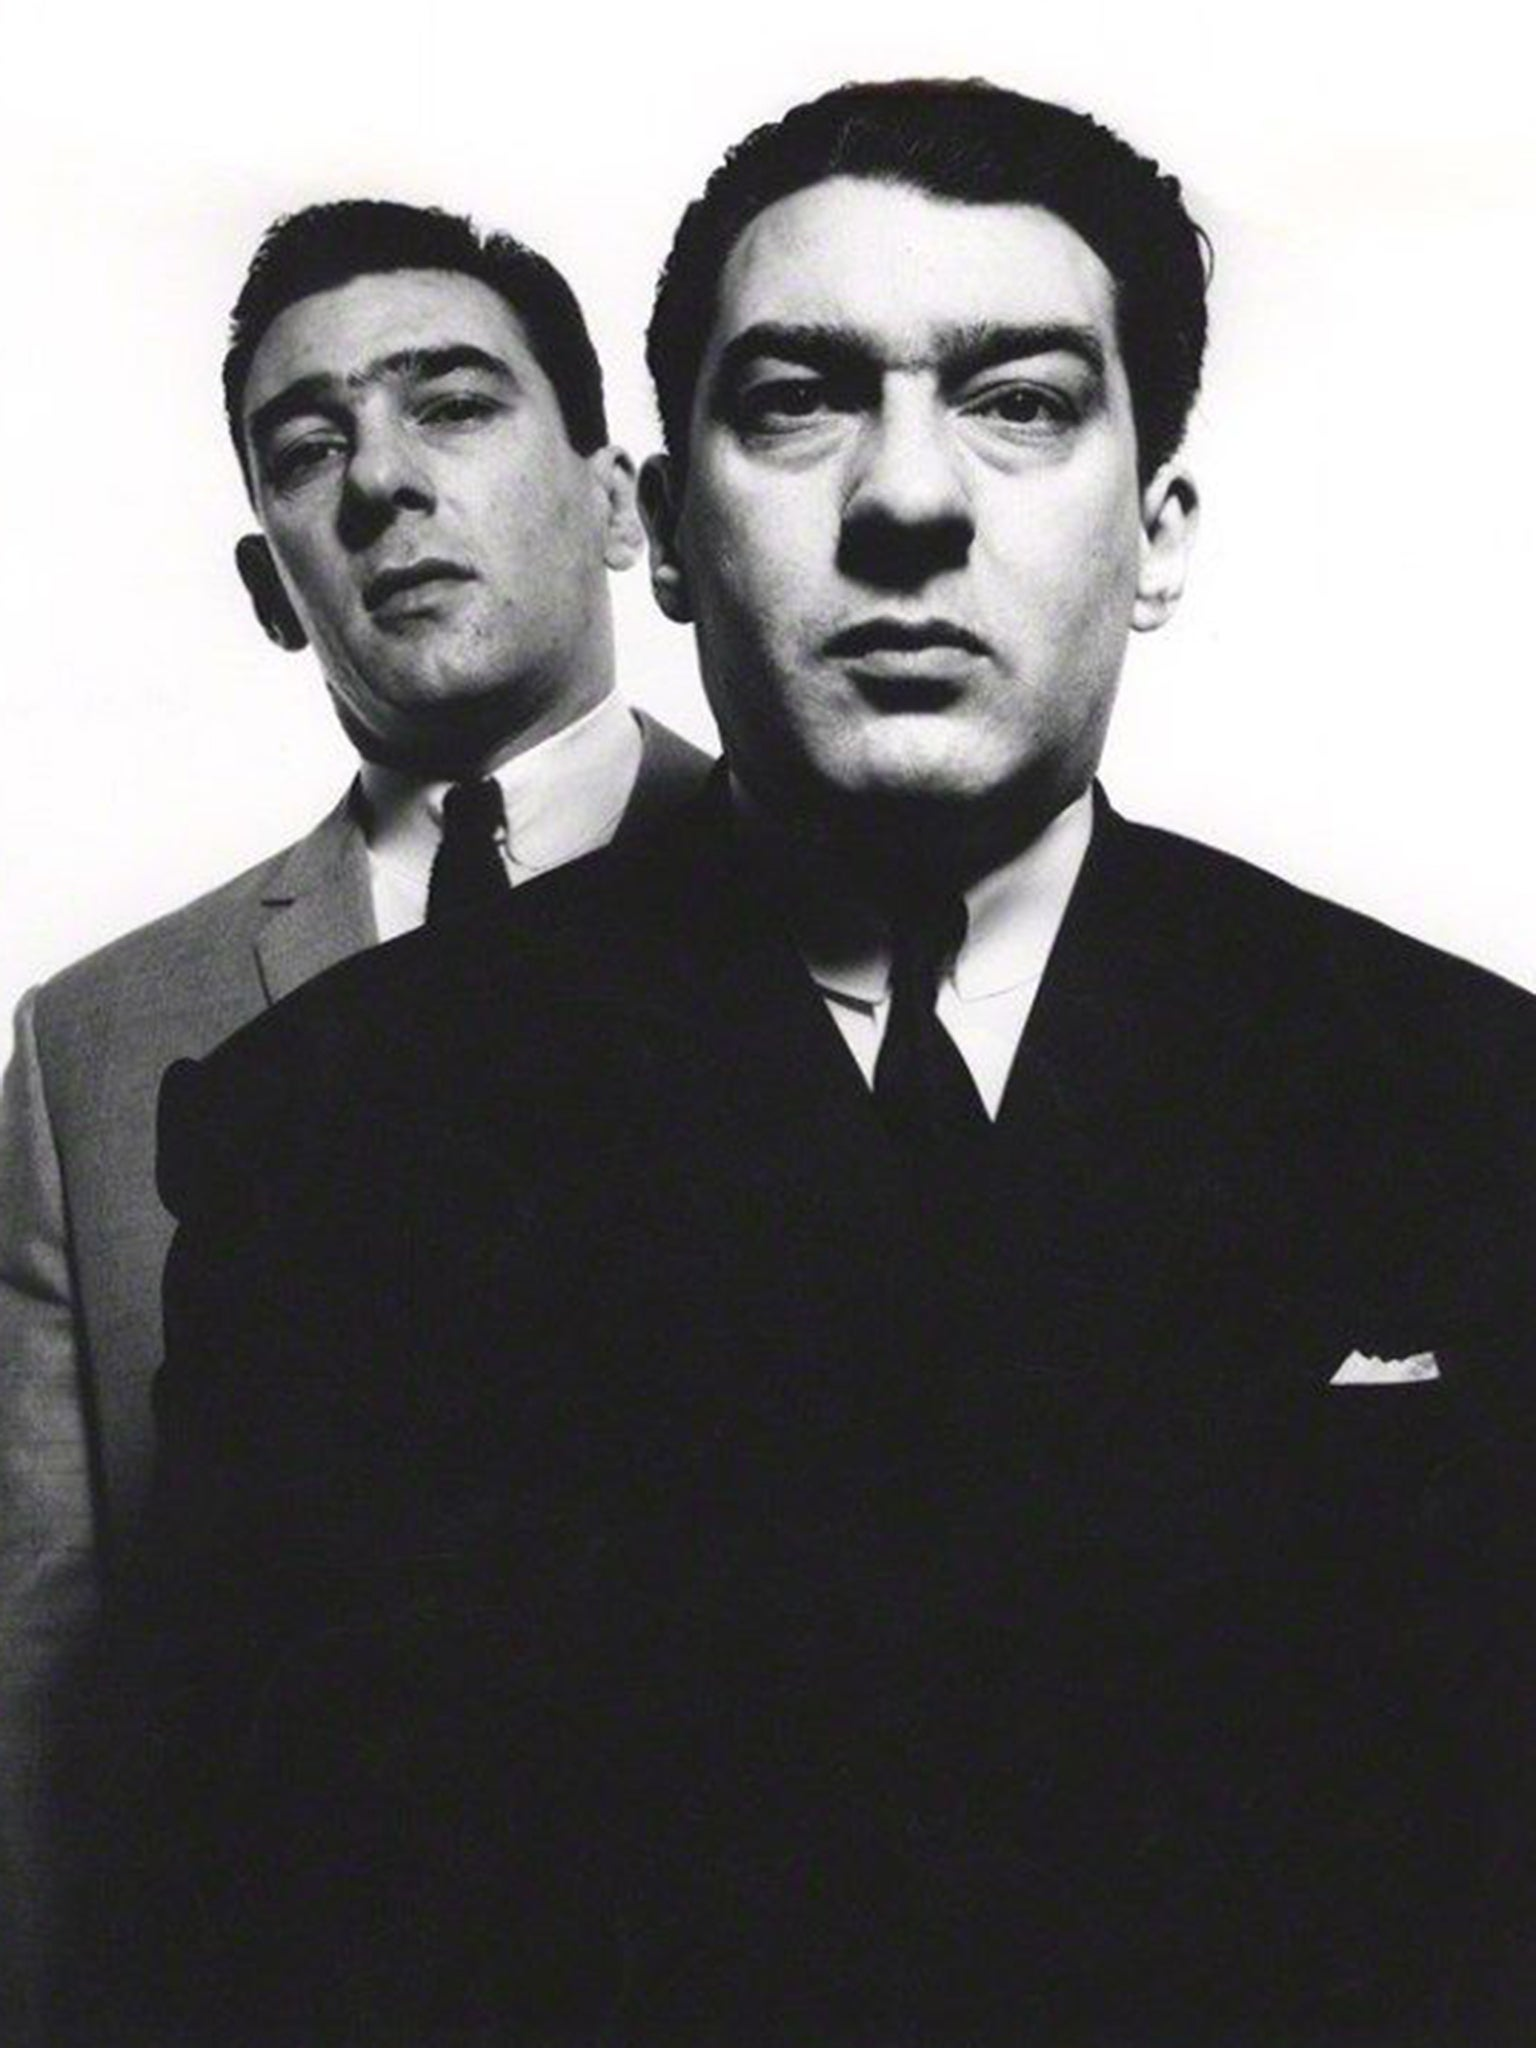 The Krays: Why do people still admire the notorious East End